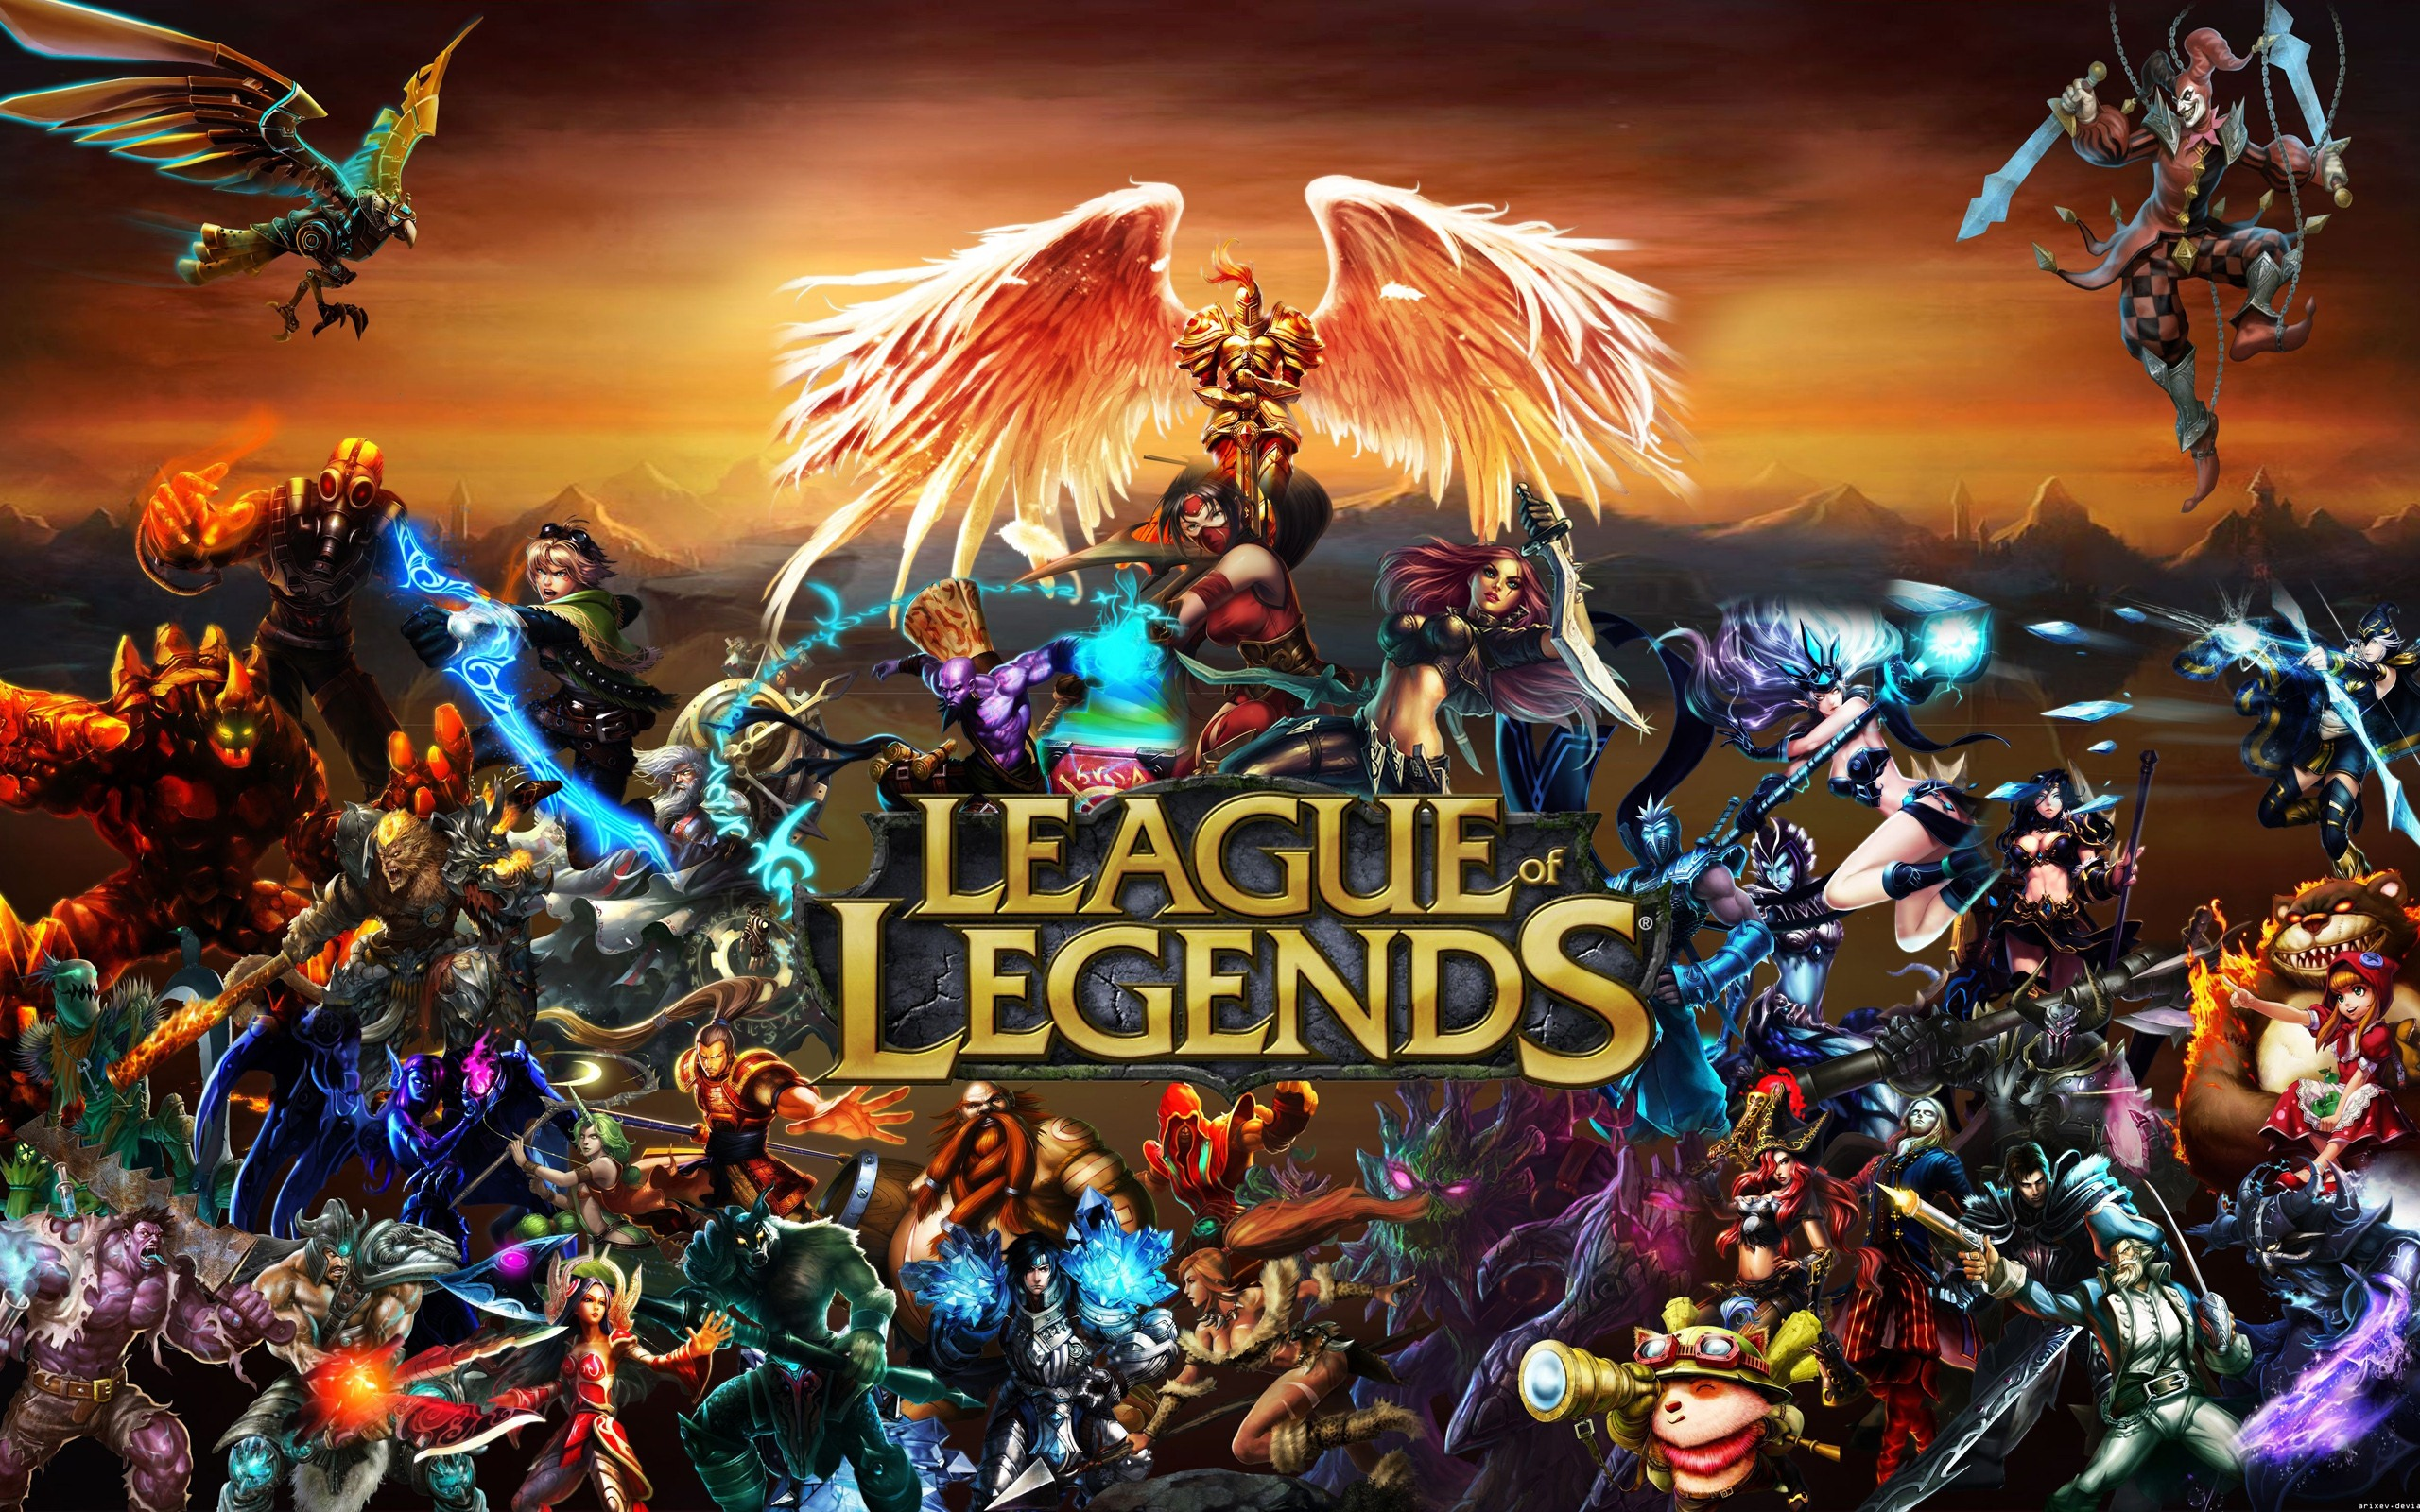 Legends Wallpaper, Pictures, Images